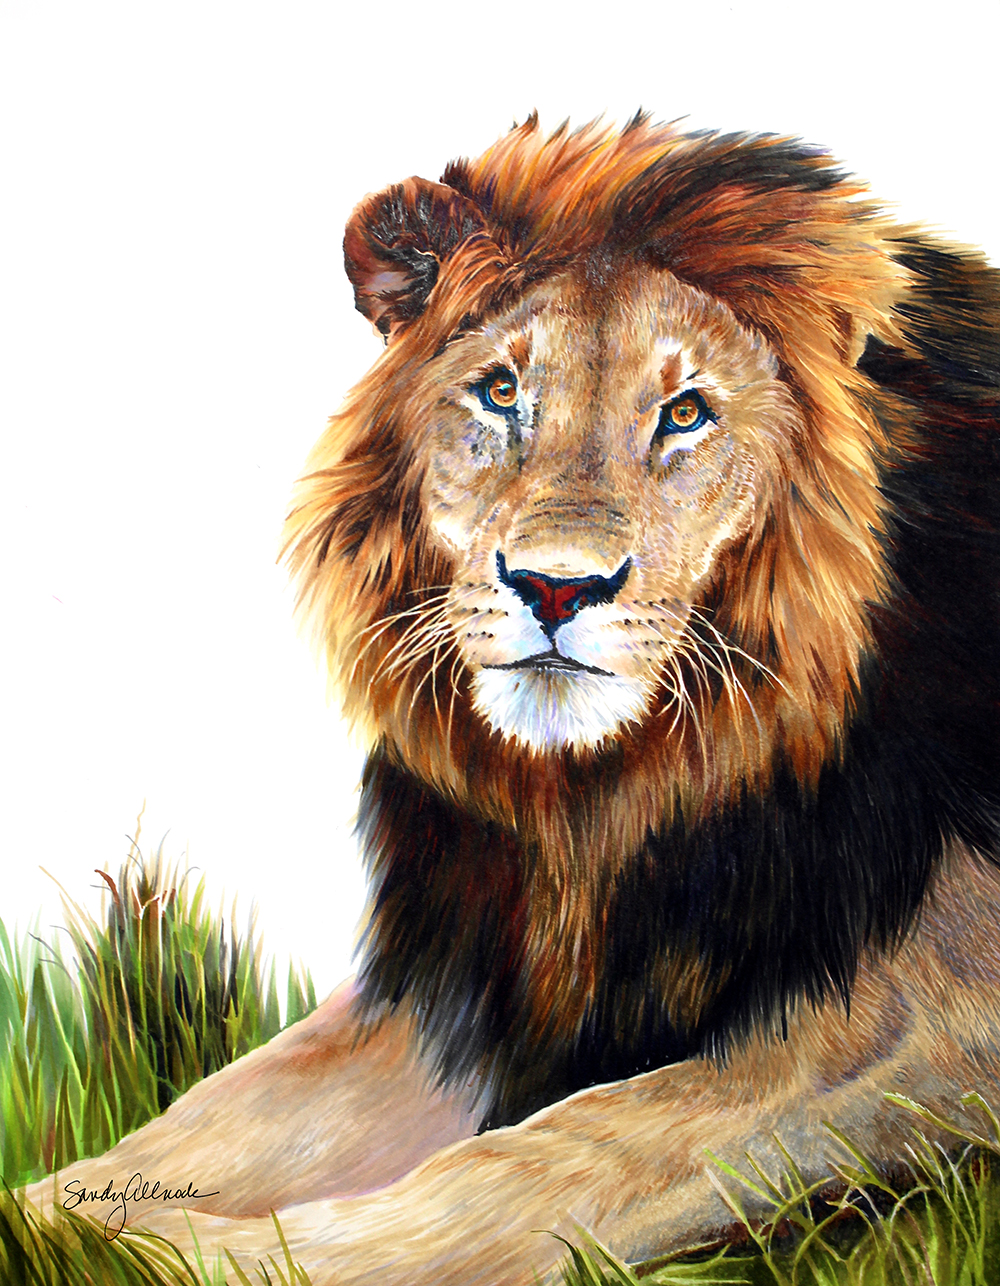 Detailed lion drawing in Copic marker by artist Sandy Allnock